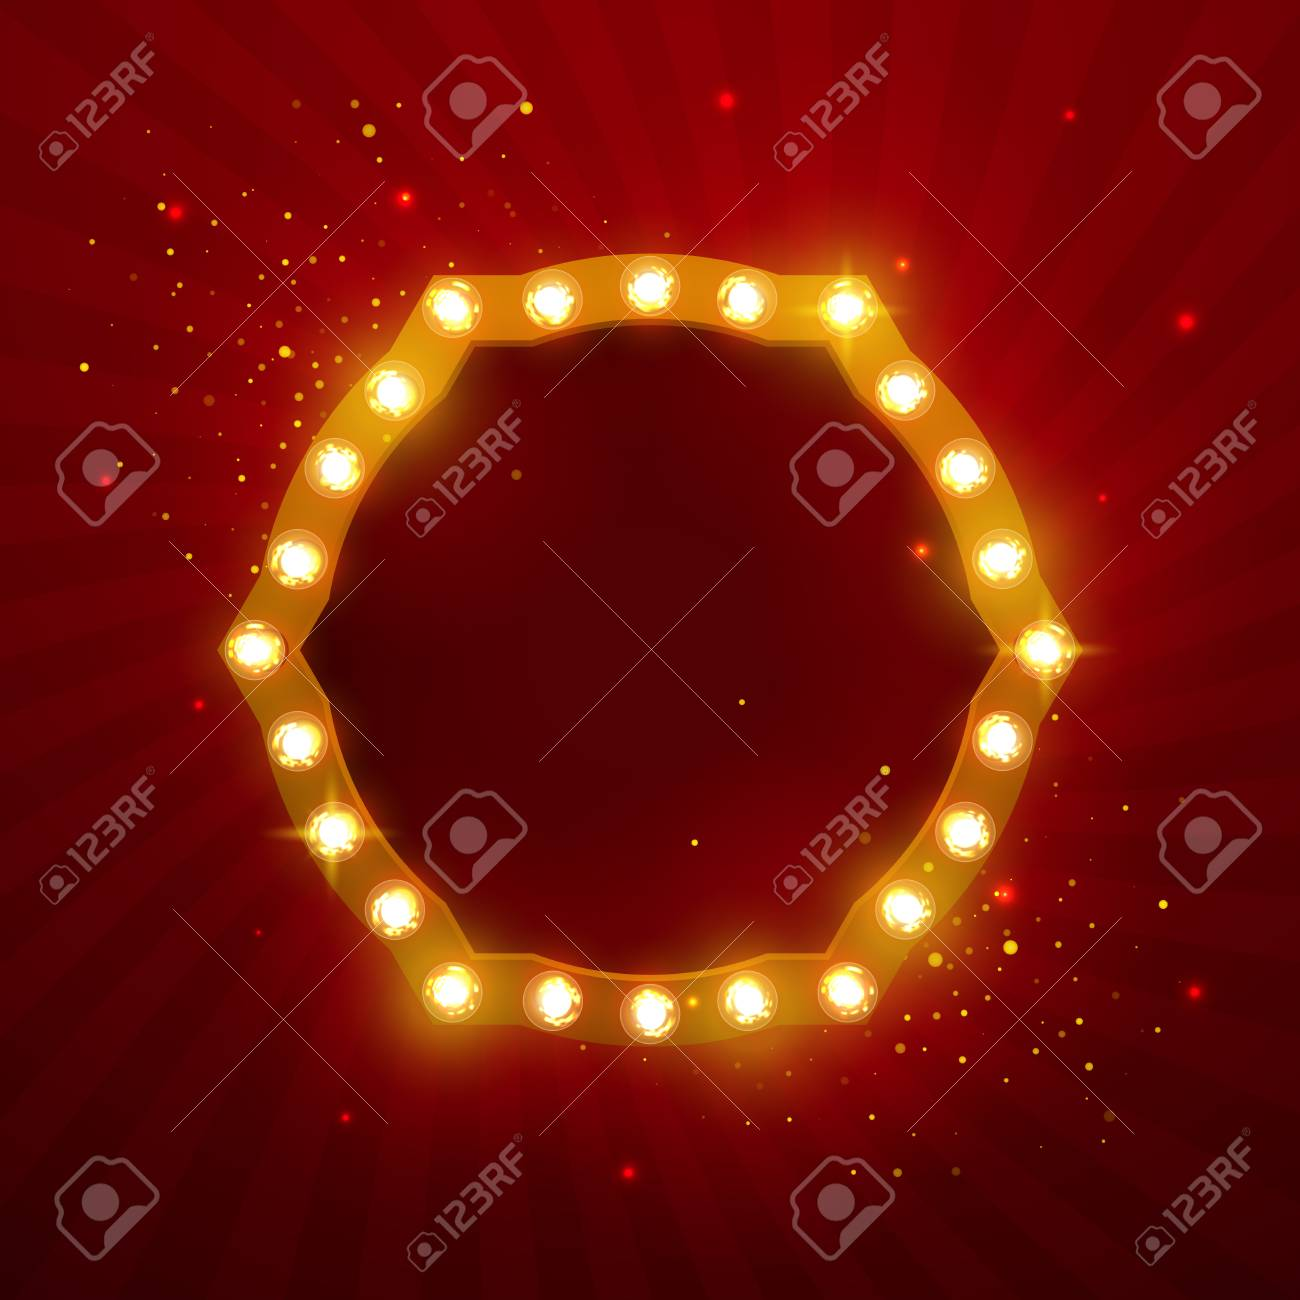 Glowing Lights Retro Frame For Advertising Design Special Light Effects Vintage Stage Backdrop